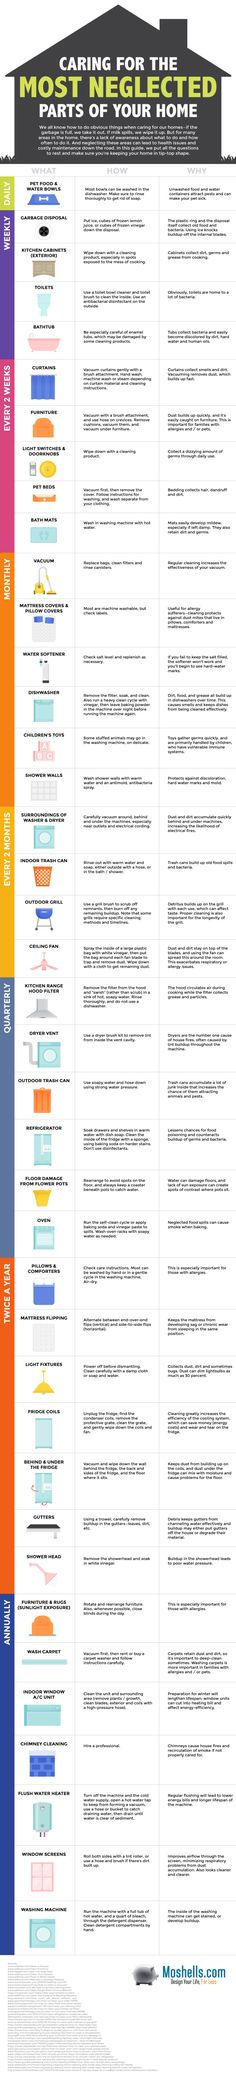 Care schedule for the house Household Cleaning Tips, Cleaning Checklist, House Cleaning Tips, Deep Cleaning, Spring Cleaning, Cleaning Hacks, Cleaning Schedules, Cleaning Lists, Cleaning Recipes